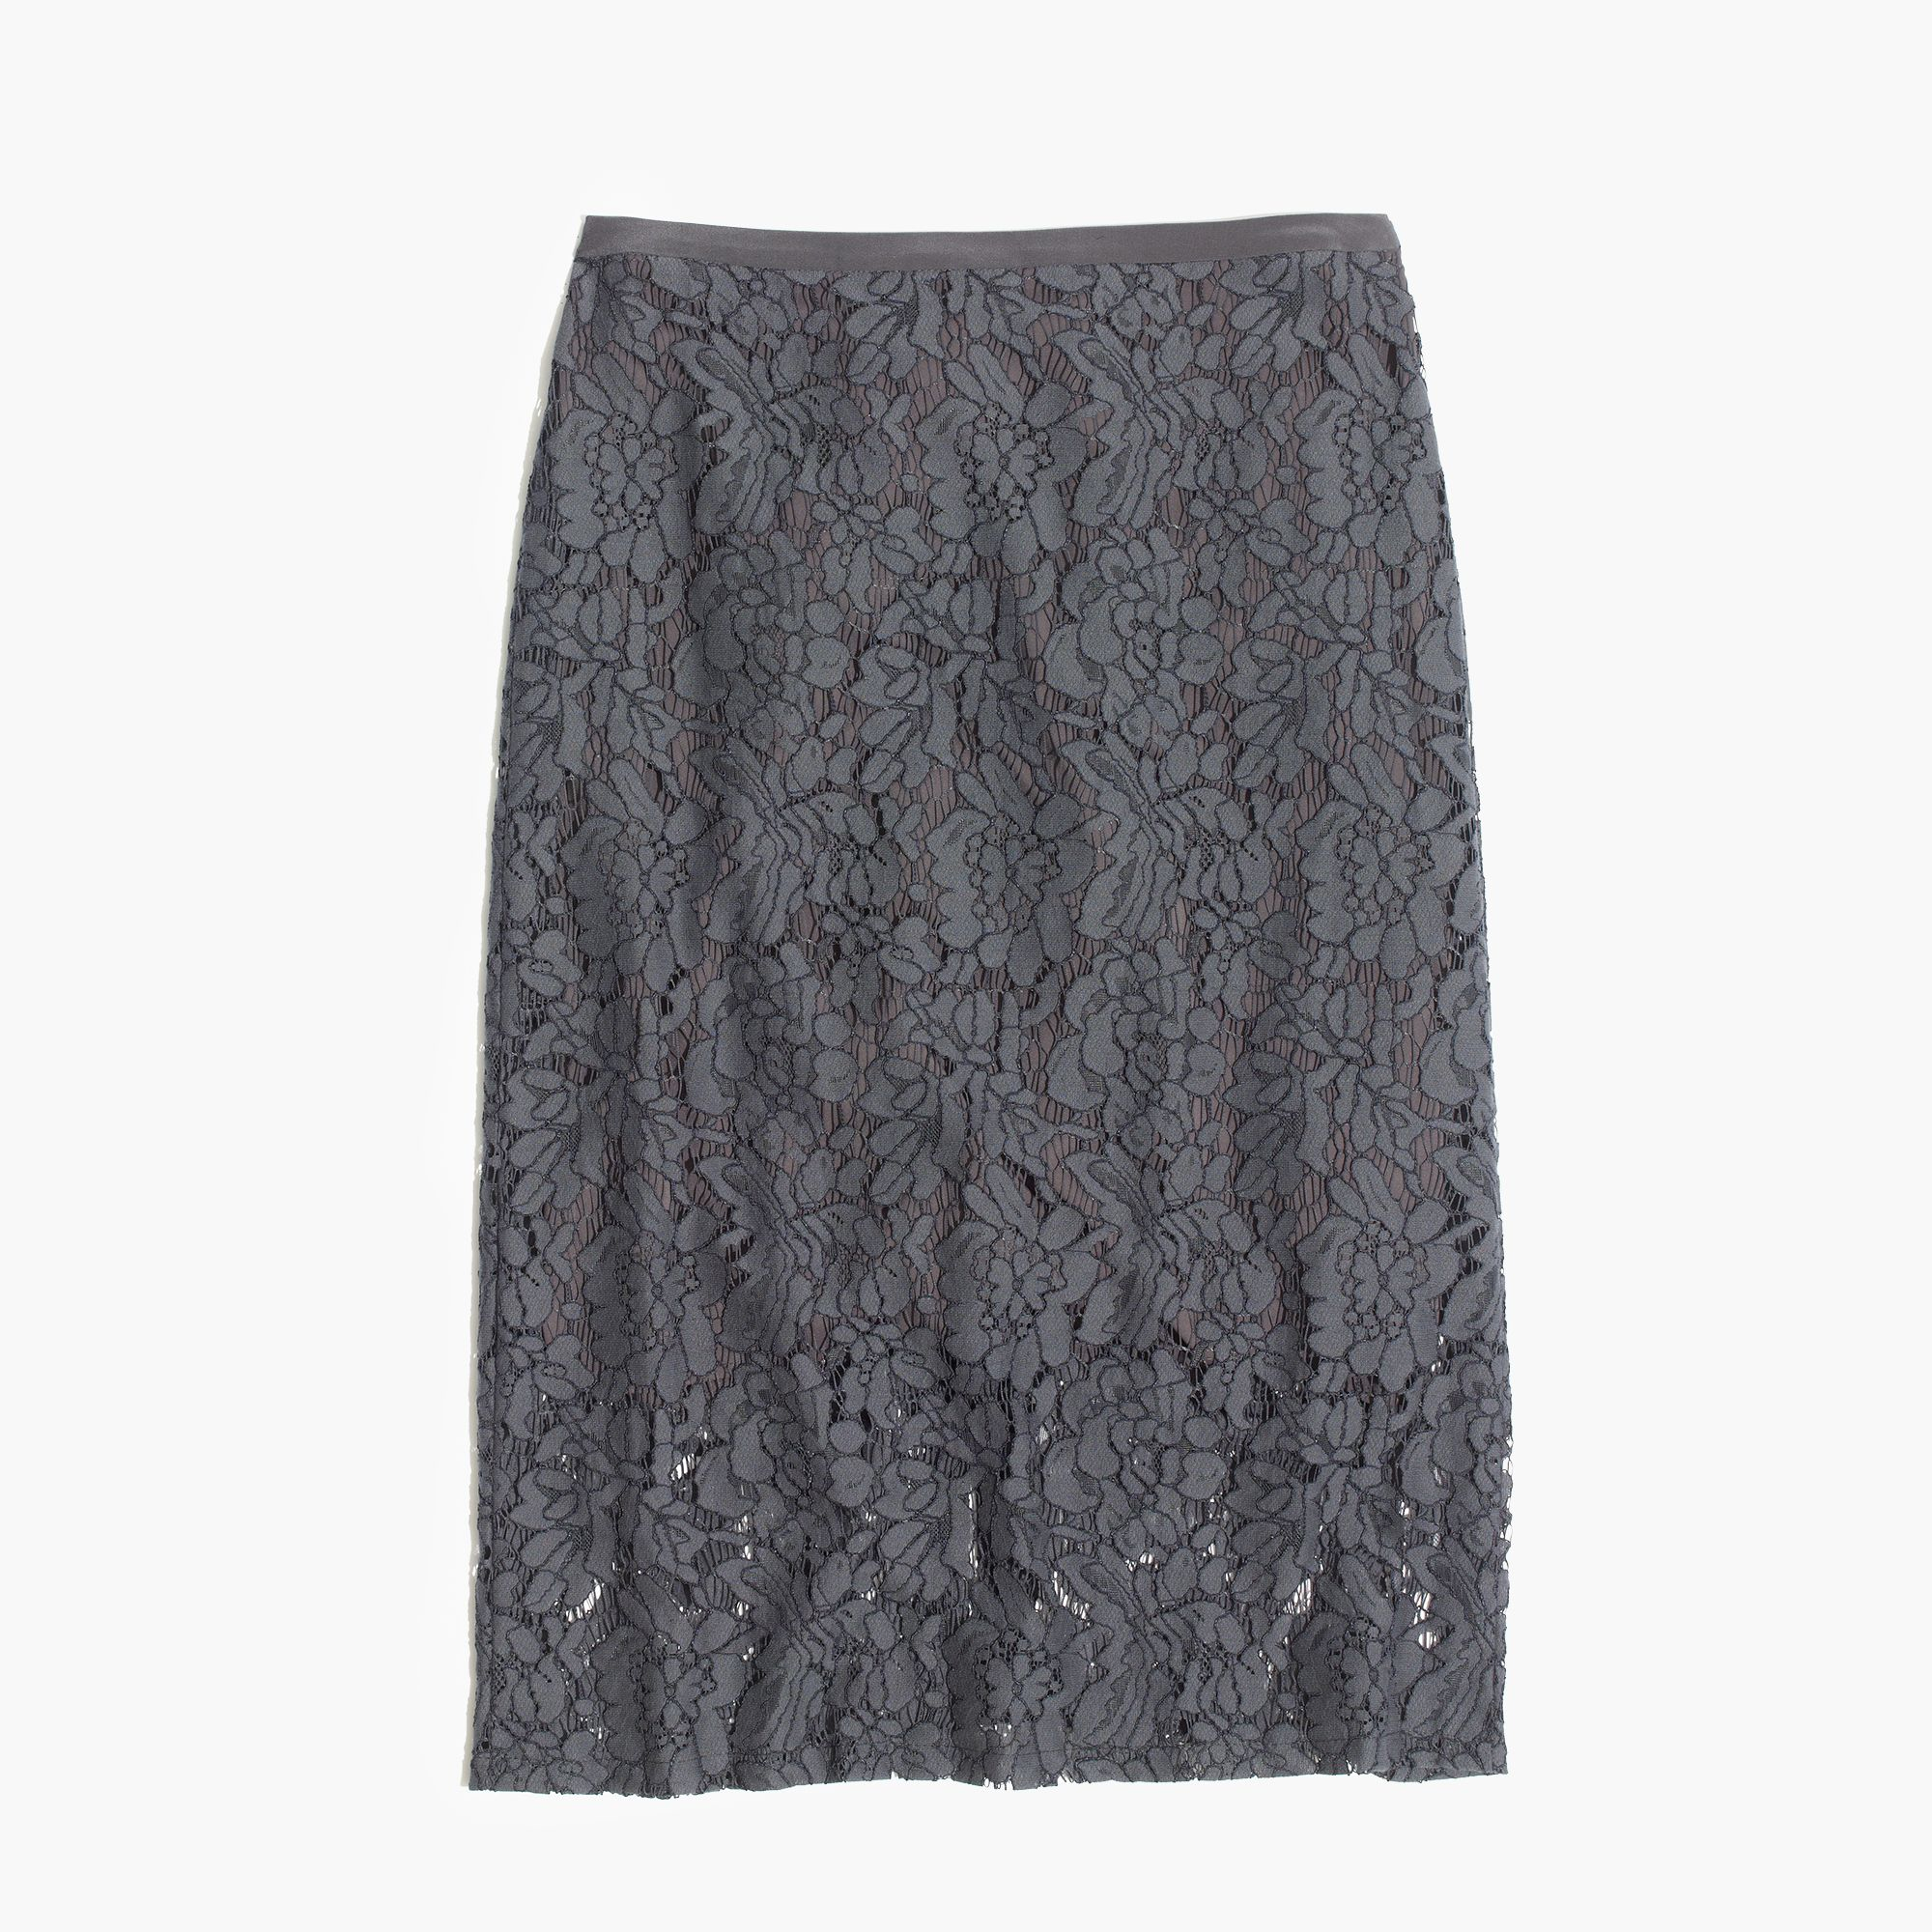 Madewell Lace Pencil Skirt in Gray | Lyst